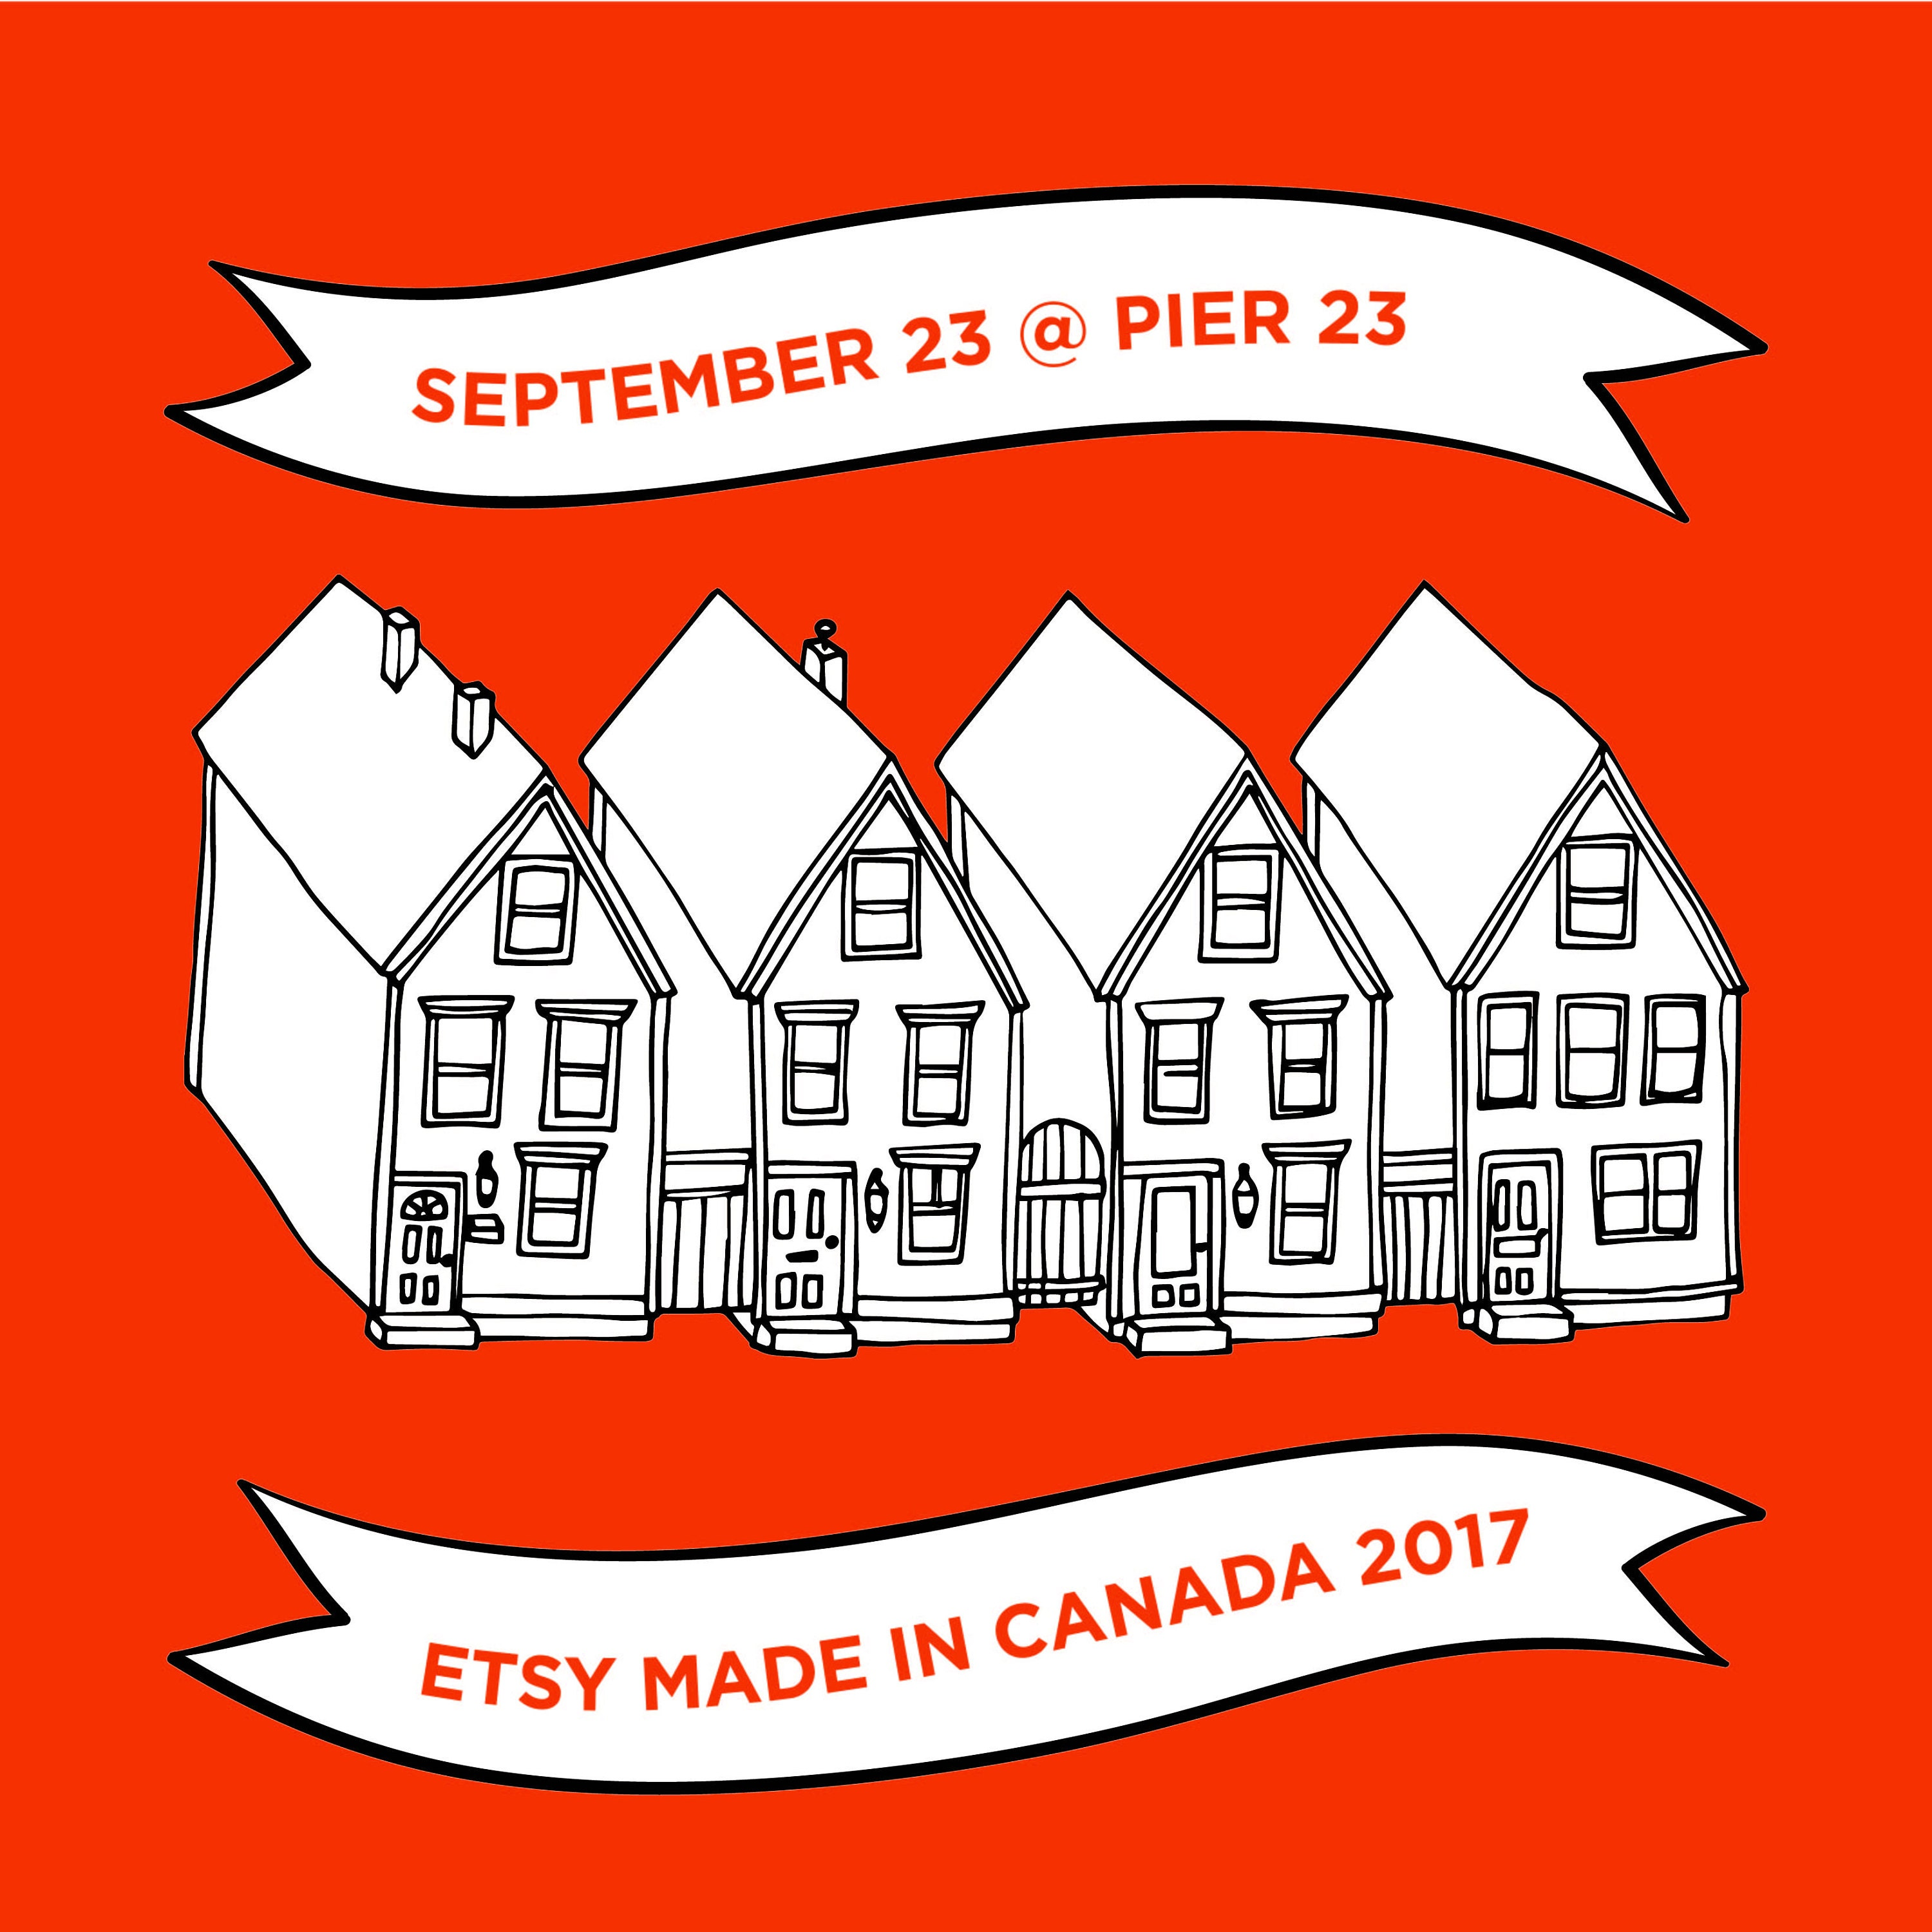 Etsy made in canada halifax 2017